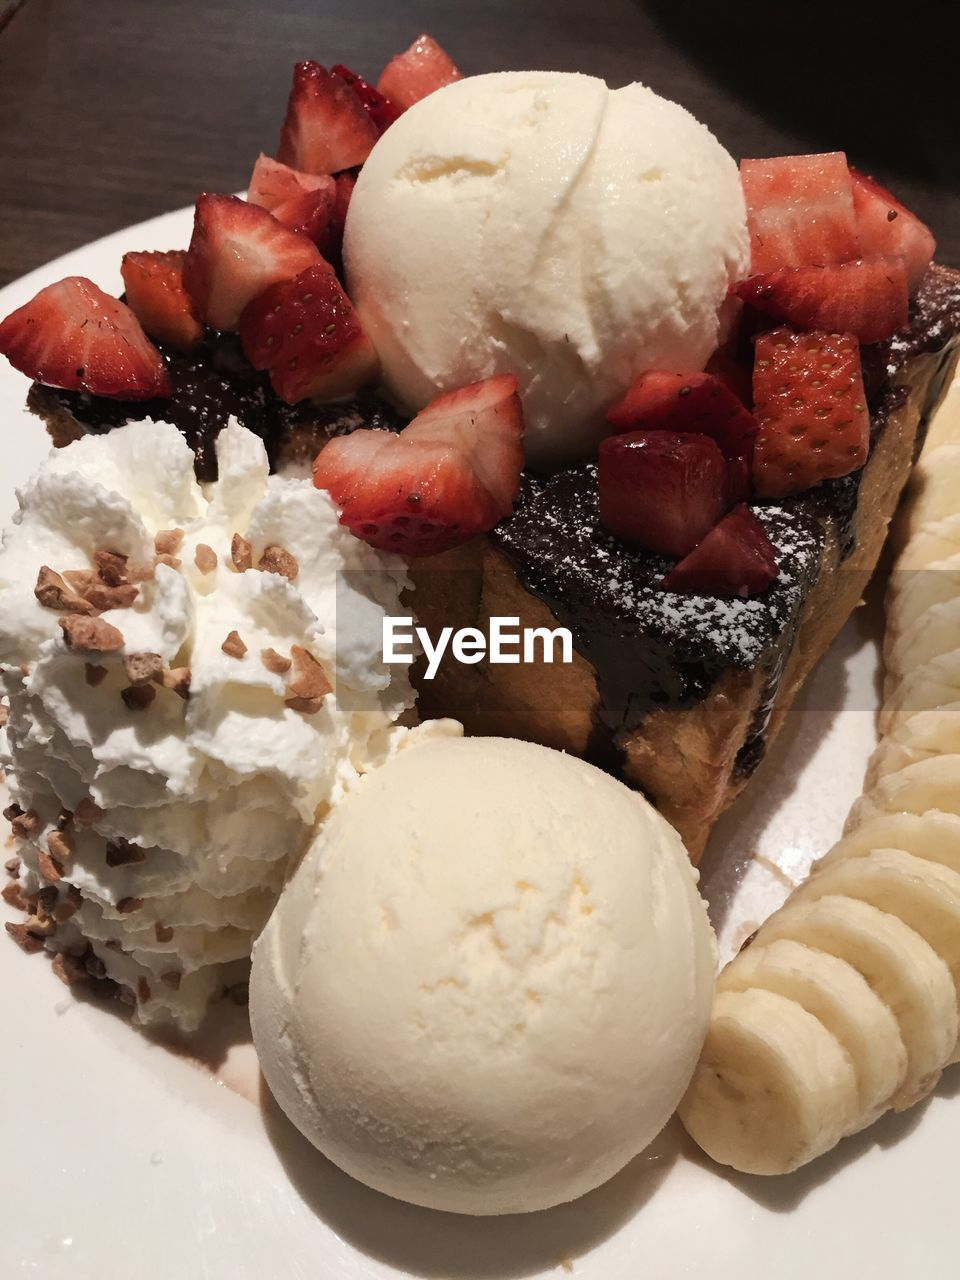 sweet food, dessert, food and drink, ice cream, frozen food, food, indulgence, still life, ready-to-eat, temptation, freshness, unhealthy eating, close-up, serving size, no people, scoop shape, frozen sweet food, indoors, cream, ice cream sundae, dessert topping, day